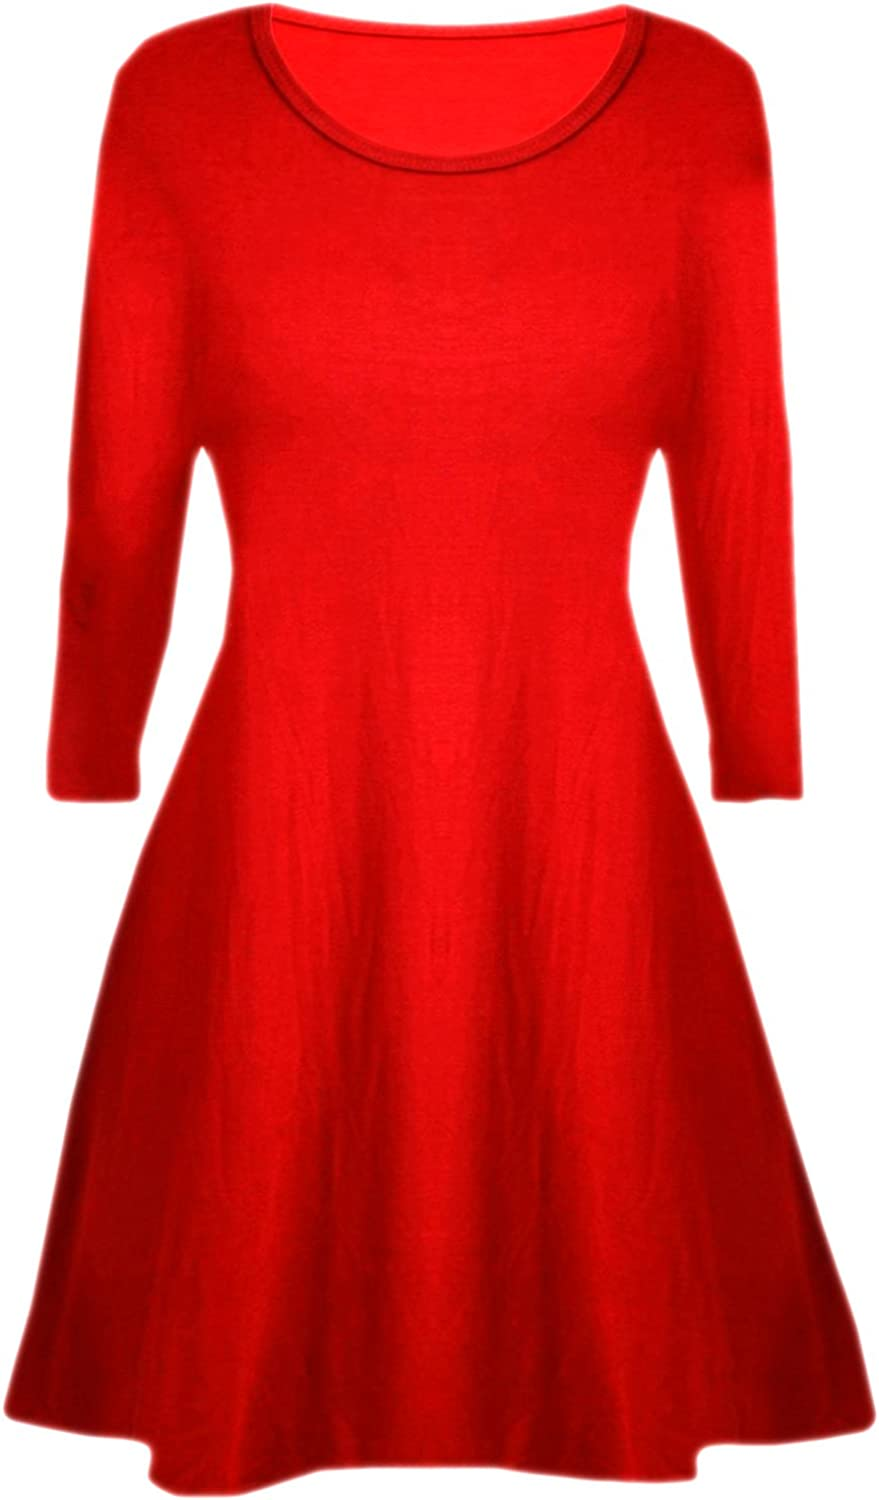 Ladies Women/'s Stretch A Line Skater Flared Swing Dress Long Sleeve Top UK 8-26